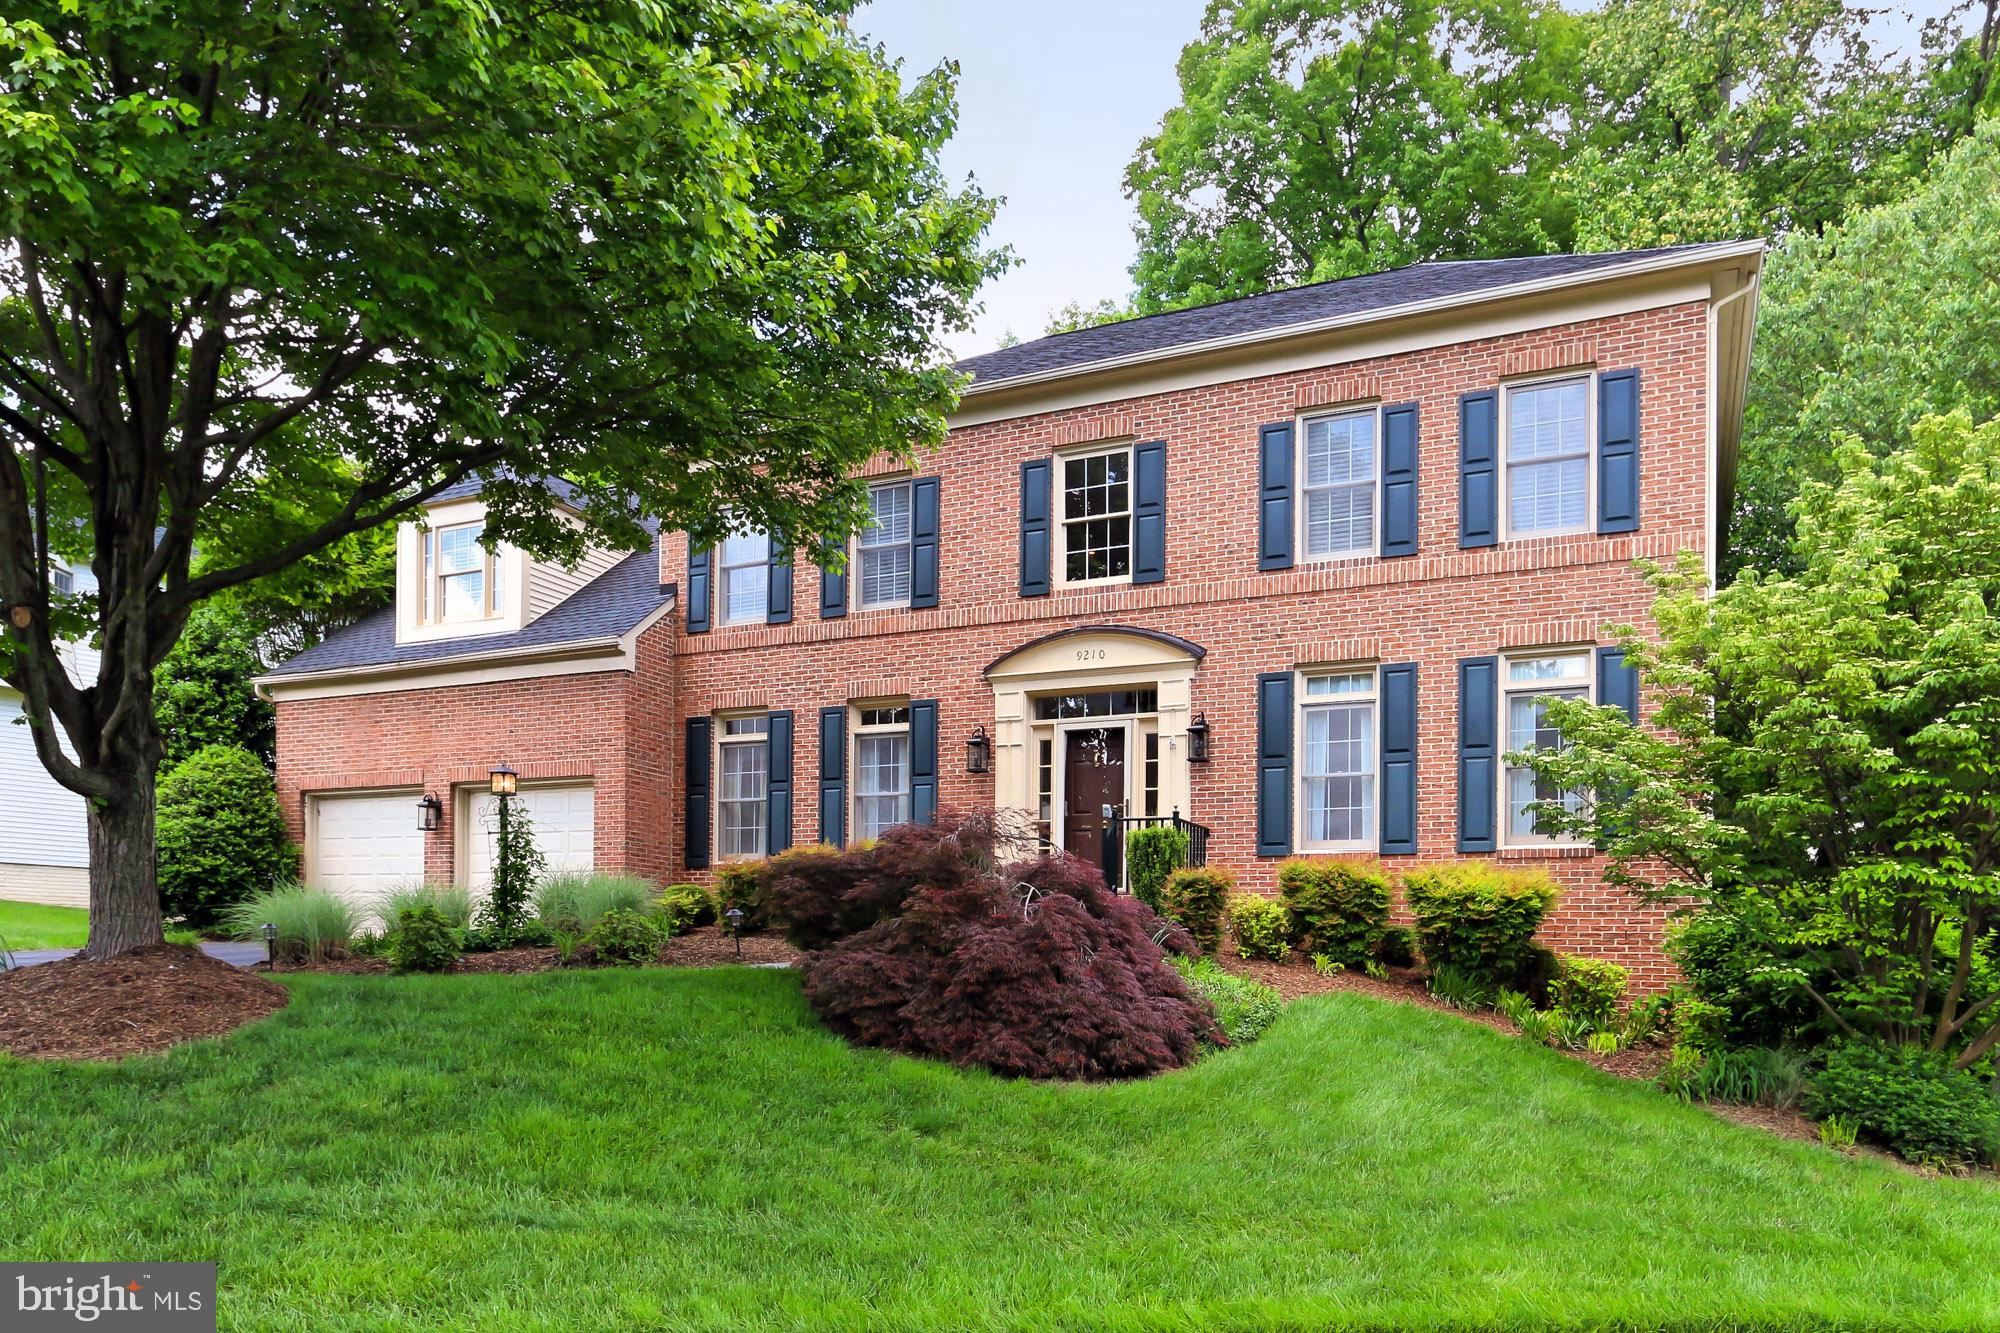 "Fantastic 4/5 bedroom brick Colonial in the super-hot Barrington neighborhood of Fairfax Station!  This gorgeous one owner home, on a private cul-de-sac shows pride of ownership throughout and boasts 4 large bedrooms, 4 and 1/2 baths, upgraded gourmet kitchen with solid cherry cabinets, granite countertops, and stainless steel appliances.  Custom moldings and trim features throughout.  Two fireplaces, and beautiful features such as hardwood flooring and custom paint colors.  In the basement, you'll see a wonderfully large, fully finished recreation area with walkout, perfect for family, friends and entertaining.  As a bonus, there is a workshop for the ""handy-person"" or mechanically inclined!  Finally this beautiful home is nestled on a treed, very private lot that offers a backyard oasis to relax and get away and includes stone patio with pre-wired area for hot tub, and fantastic deck for your enjoyment!  This neighborhood is highly sought-after and the location is great, including outstanding schools and shopping.  Walk or bike to County trail system and Lake Mercer.   This house will not last!"